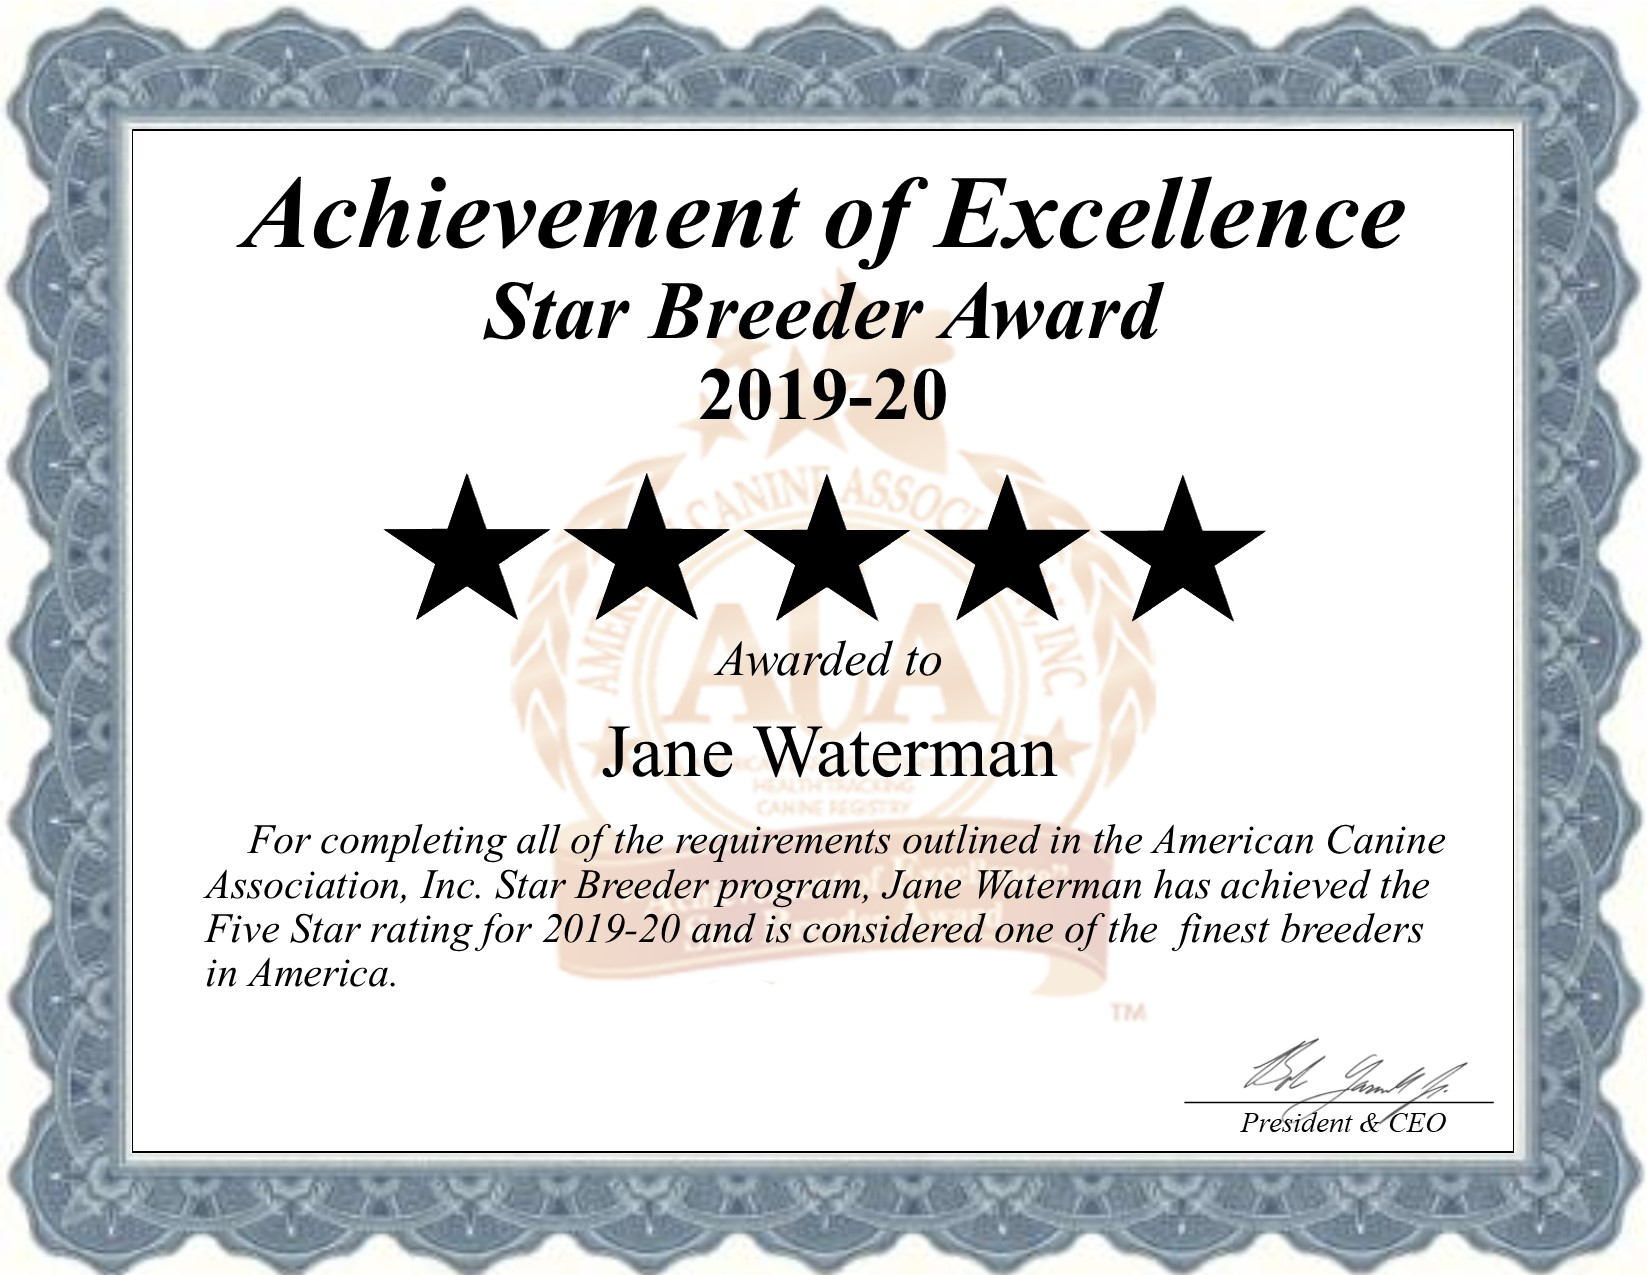 jane, waterman, dog, breeder, certiifcate, atwood, ks, kansas, jane-waterman, dog-breeder, dogbreeder, kennel, reviews, customer, star, starbreeder, 5, five, USDA, puppy, puppies, ACA, inspection, inspections, reports, mill, puppymill, mills